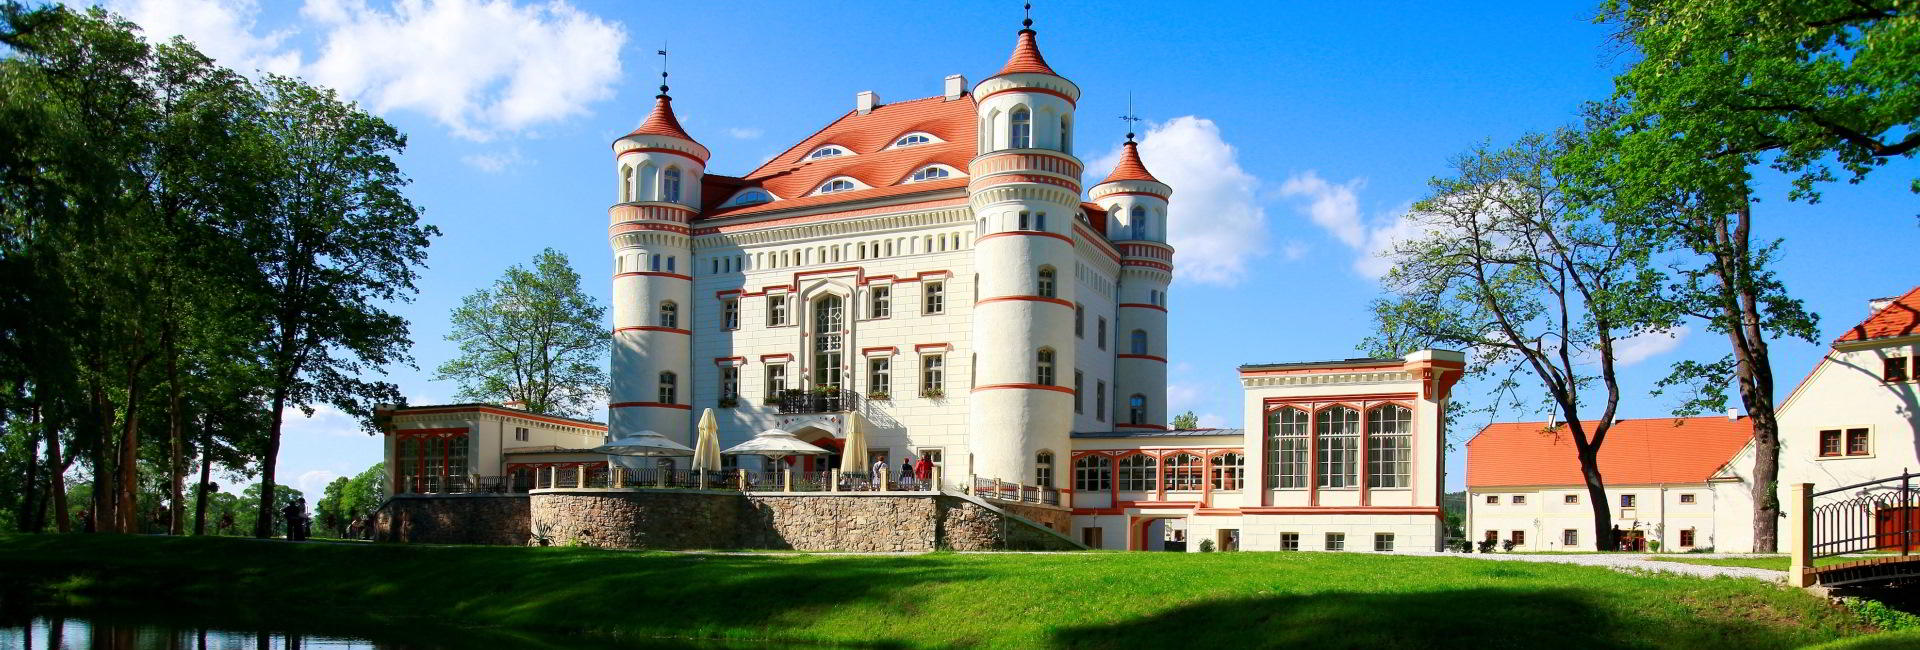 Wojanow Palace in Lower Silesia